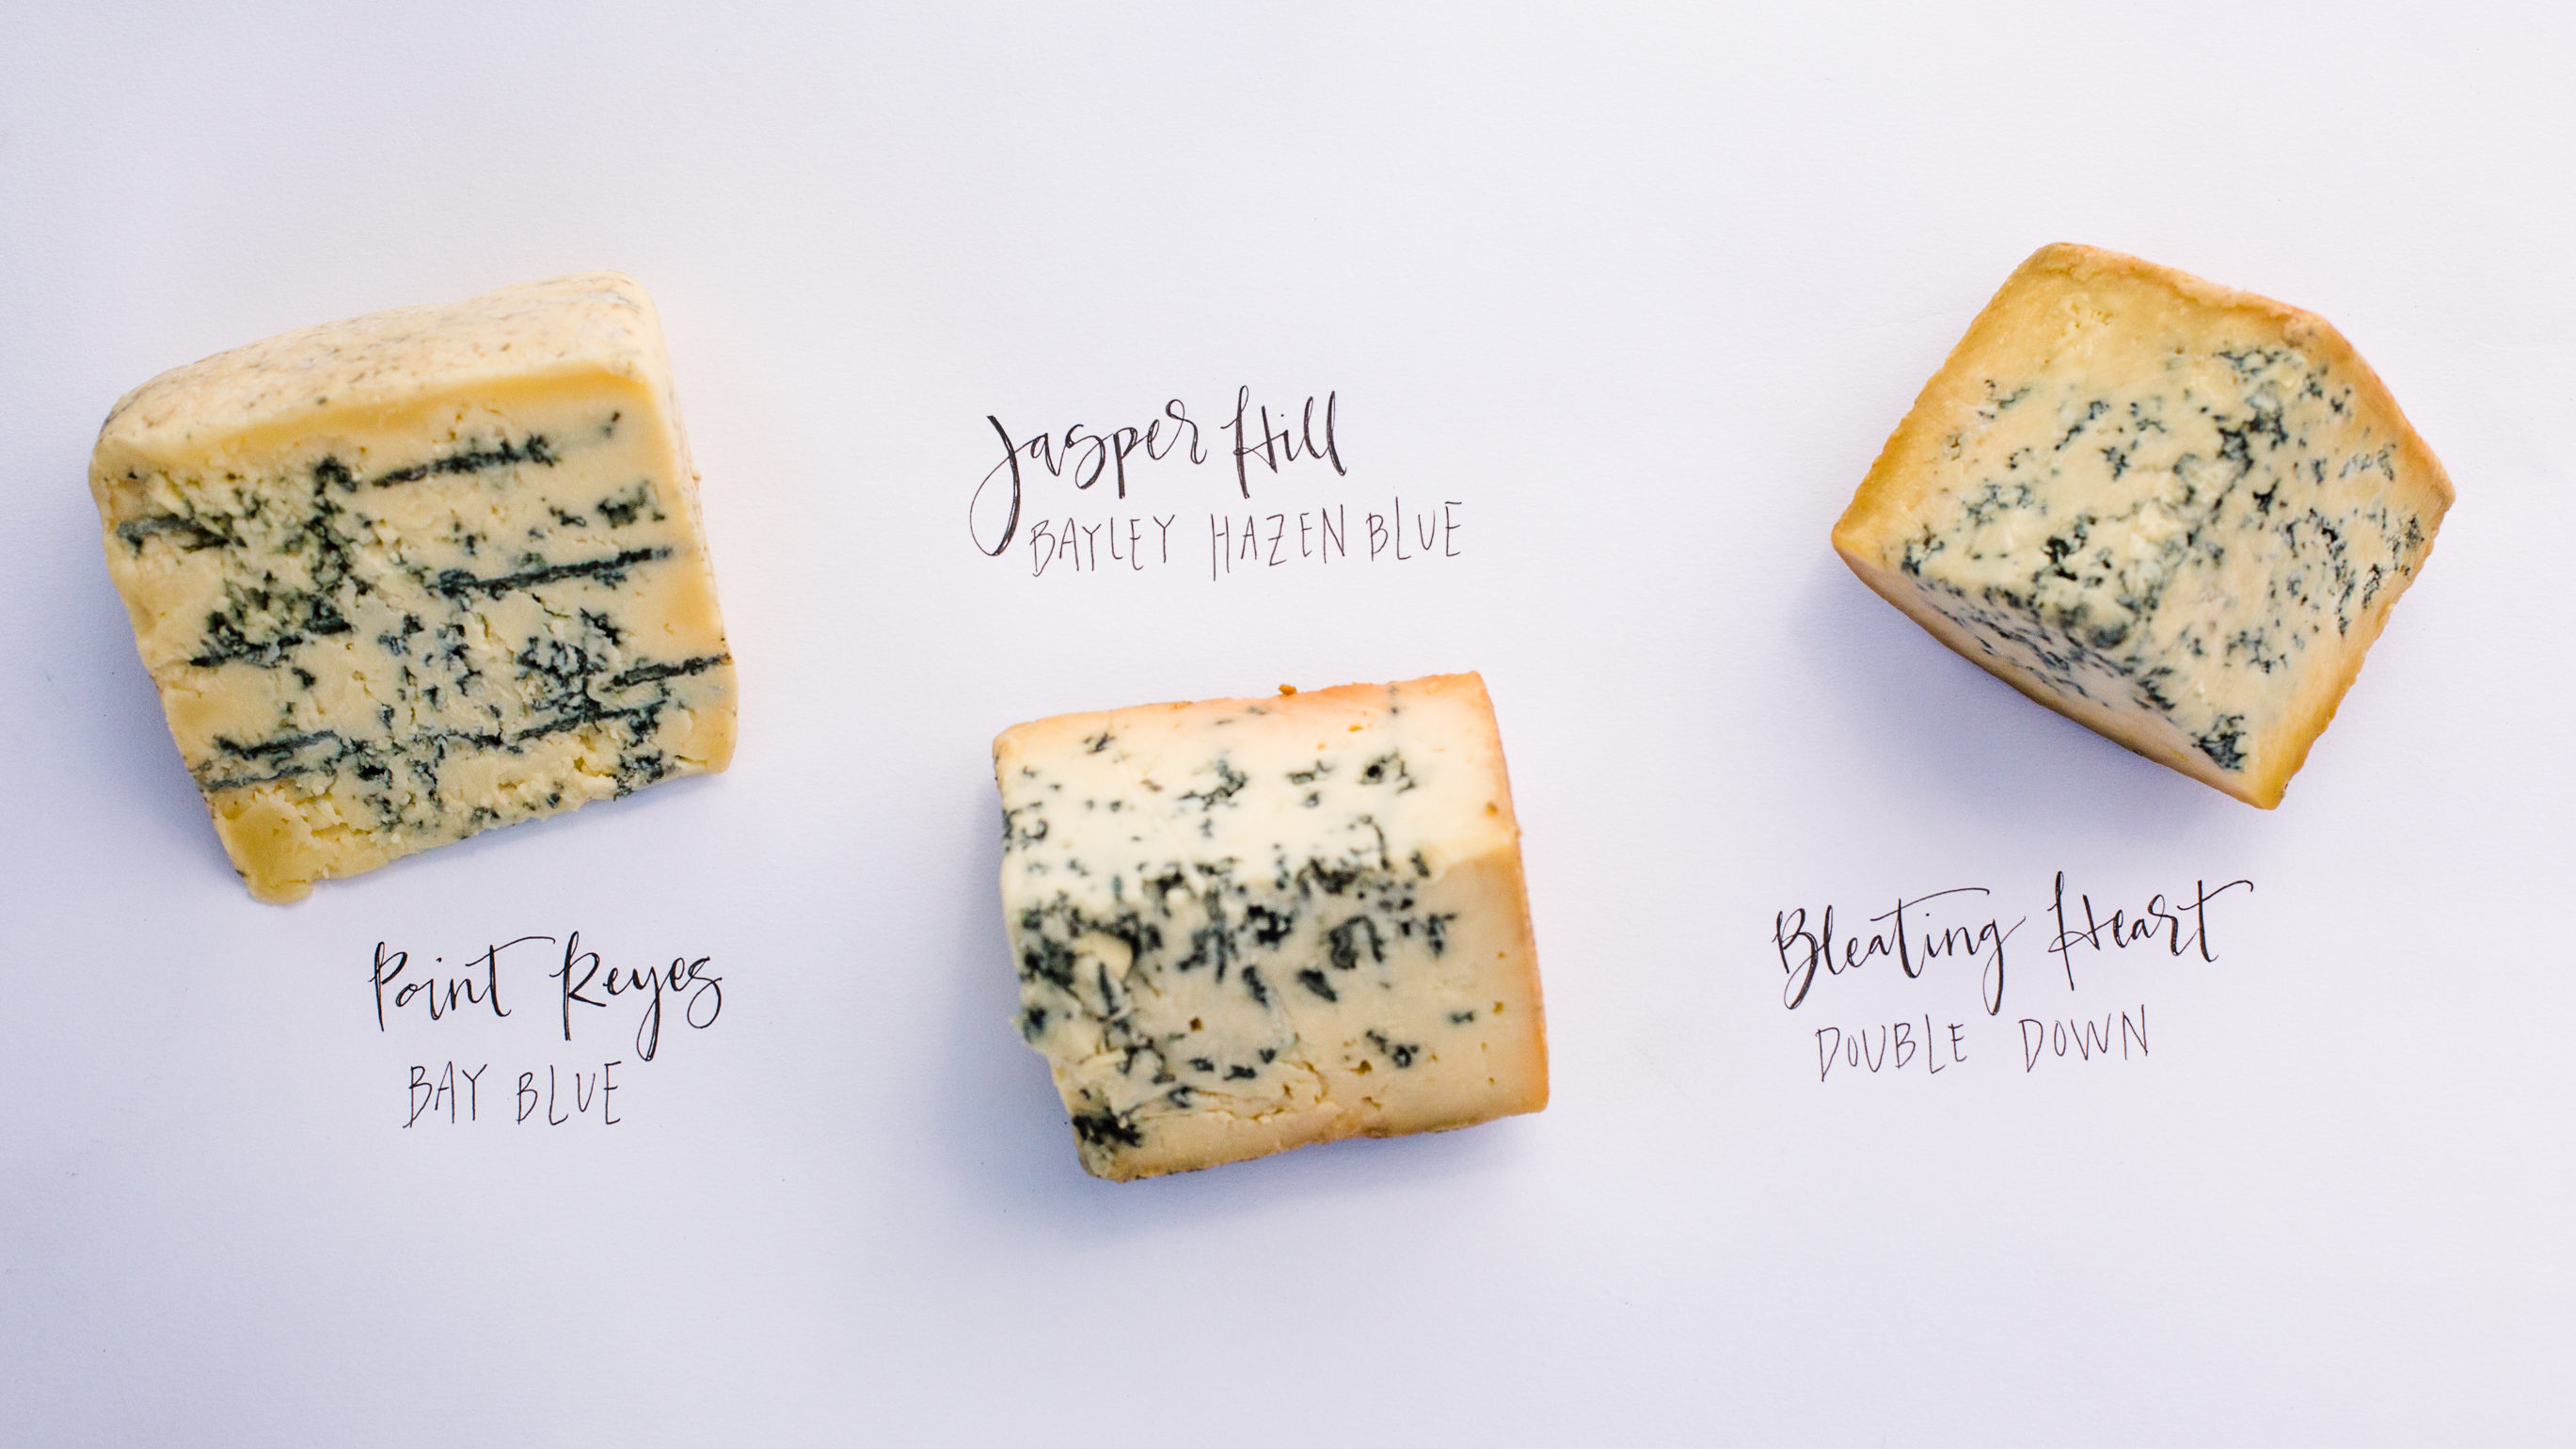 Blue Cheese Tasting